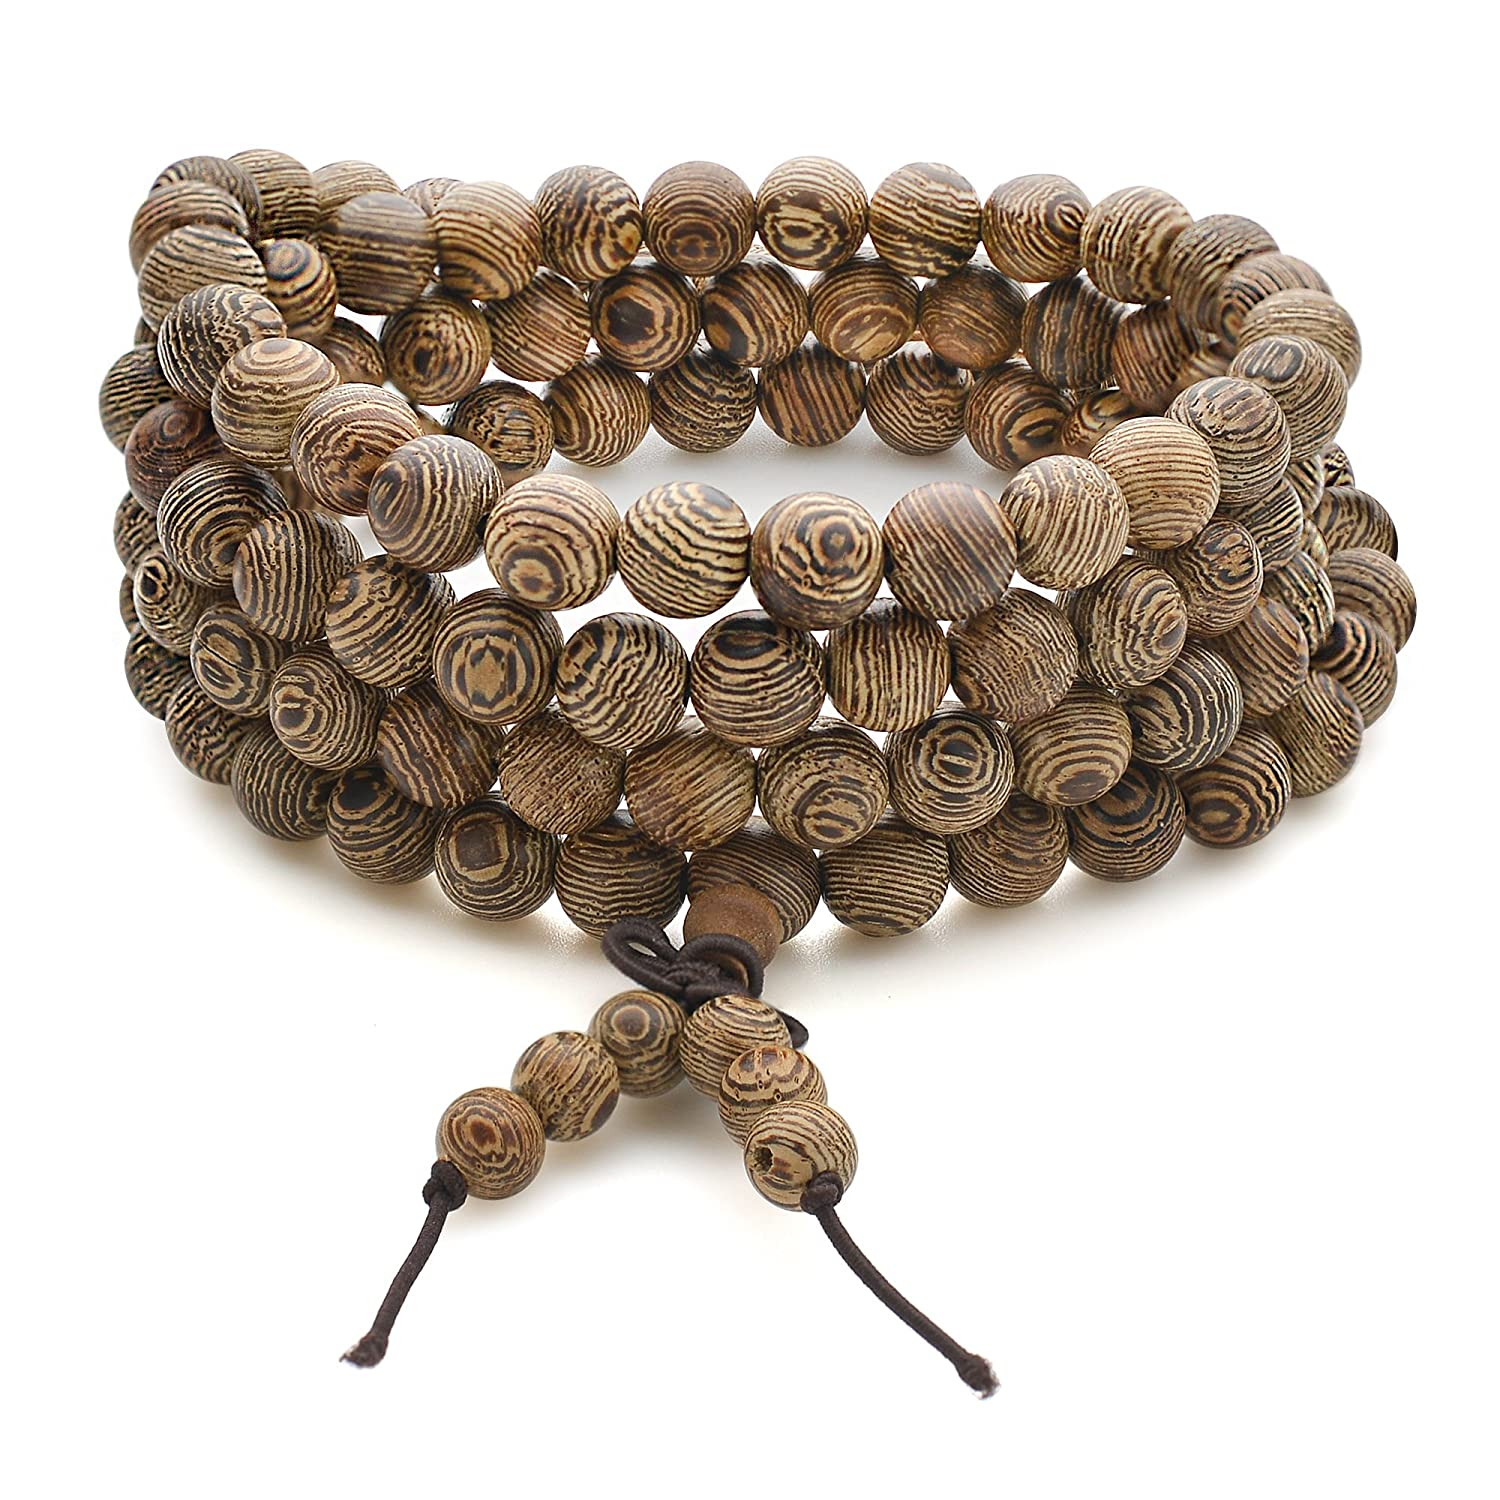 new men wood bracelet meditation bracelets wooden yoga product prayer bead buddhist sandalwood jewelry hot beads buddha